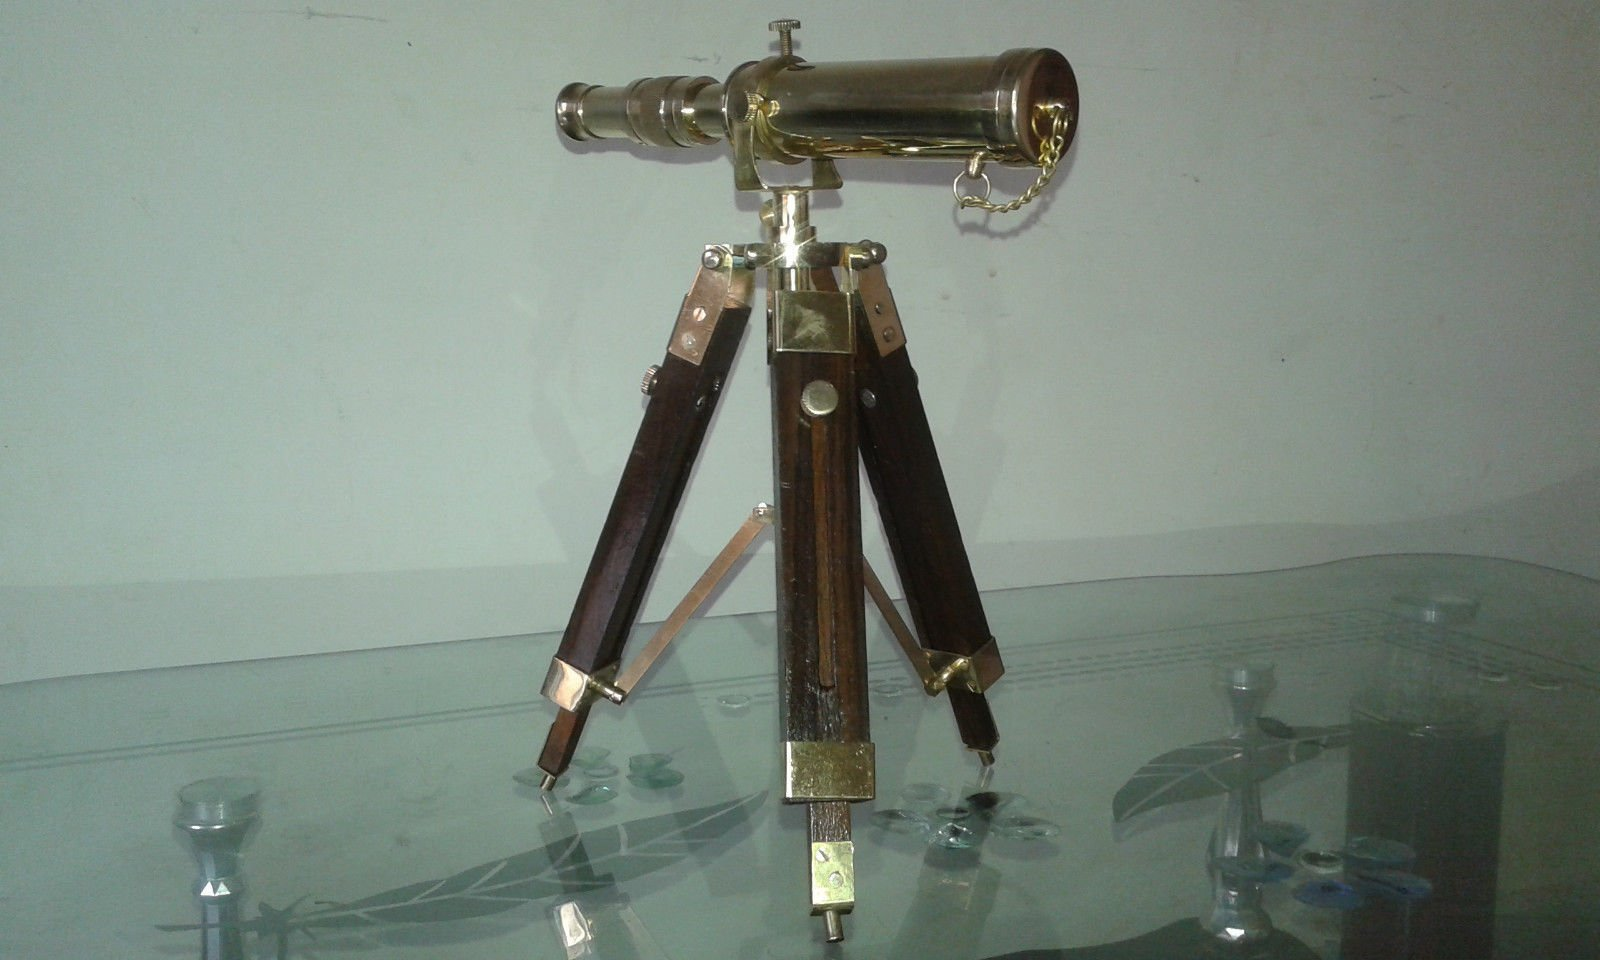 Vintage Collectable Decor Brass polish Telescope with Wooden Tripod Stand